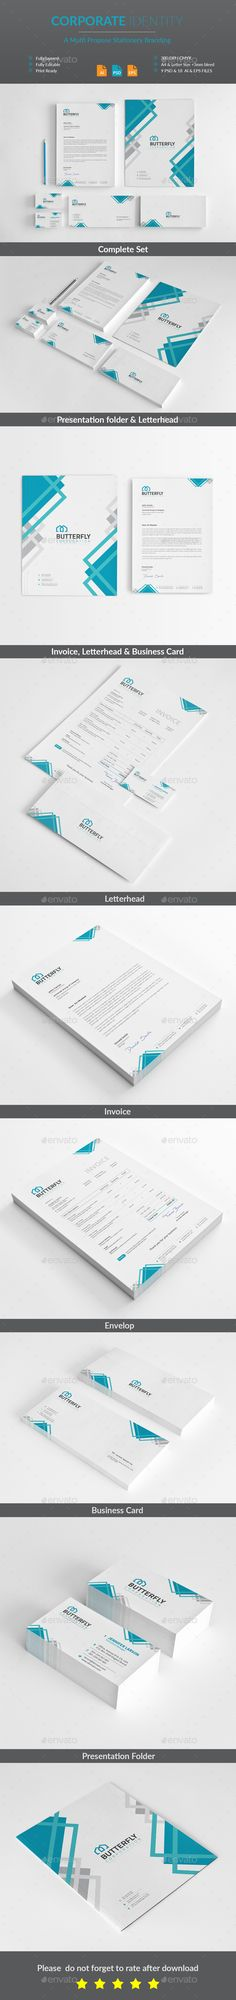 #Corporate #Identity - #Stationery Print Templates Download here: https://graphicriver.net/item/corporate-identity/19489002?ref=alena994